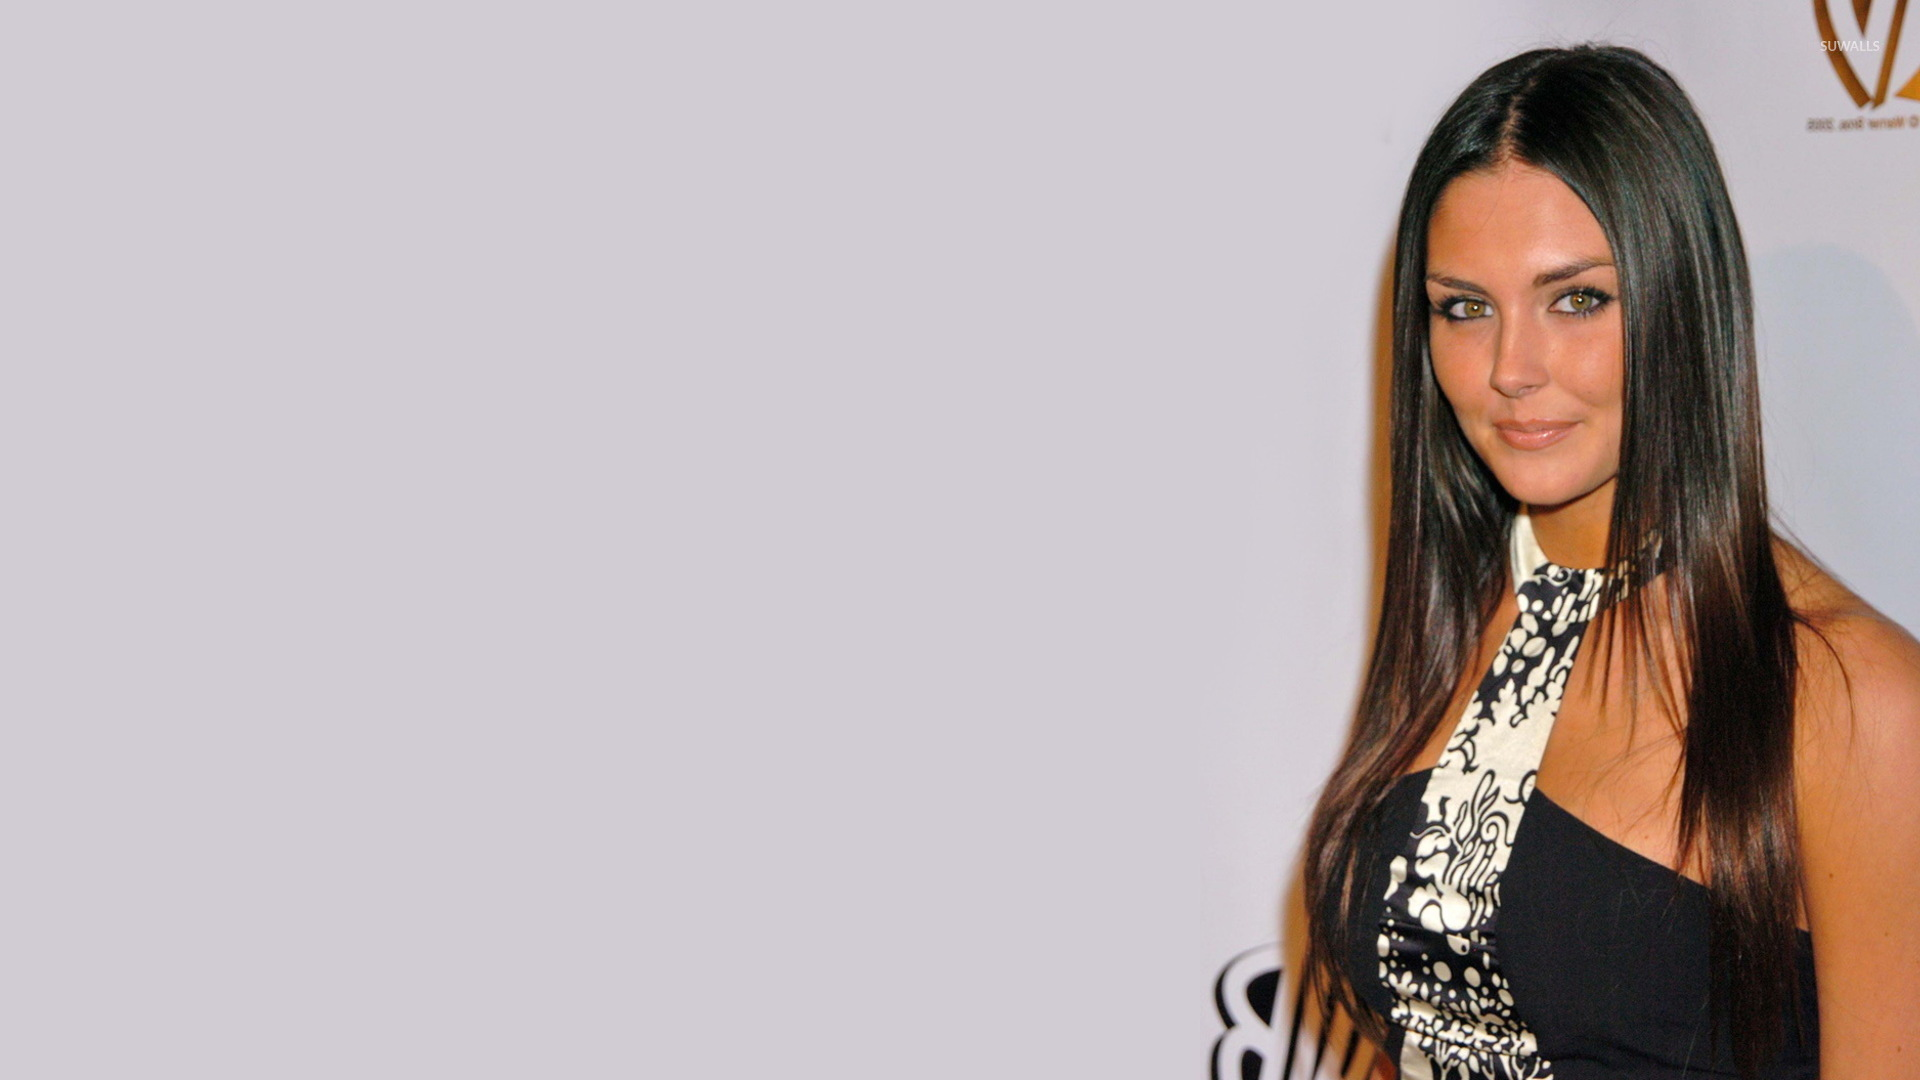 1920x1080 - Taylor Cole Wallpapers 28